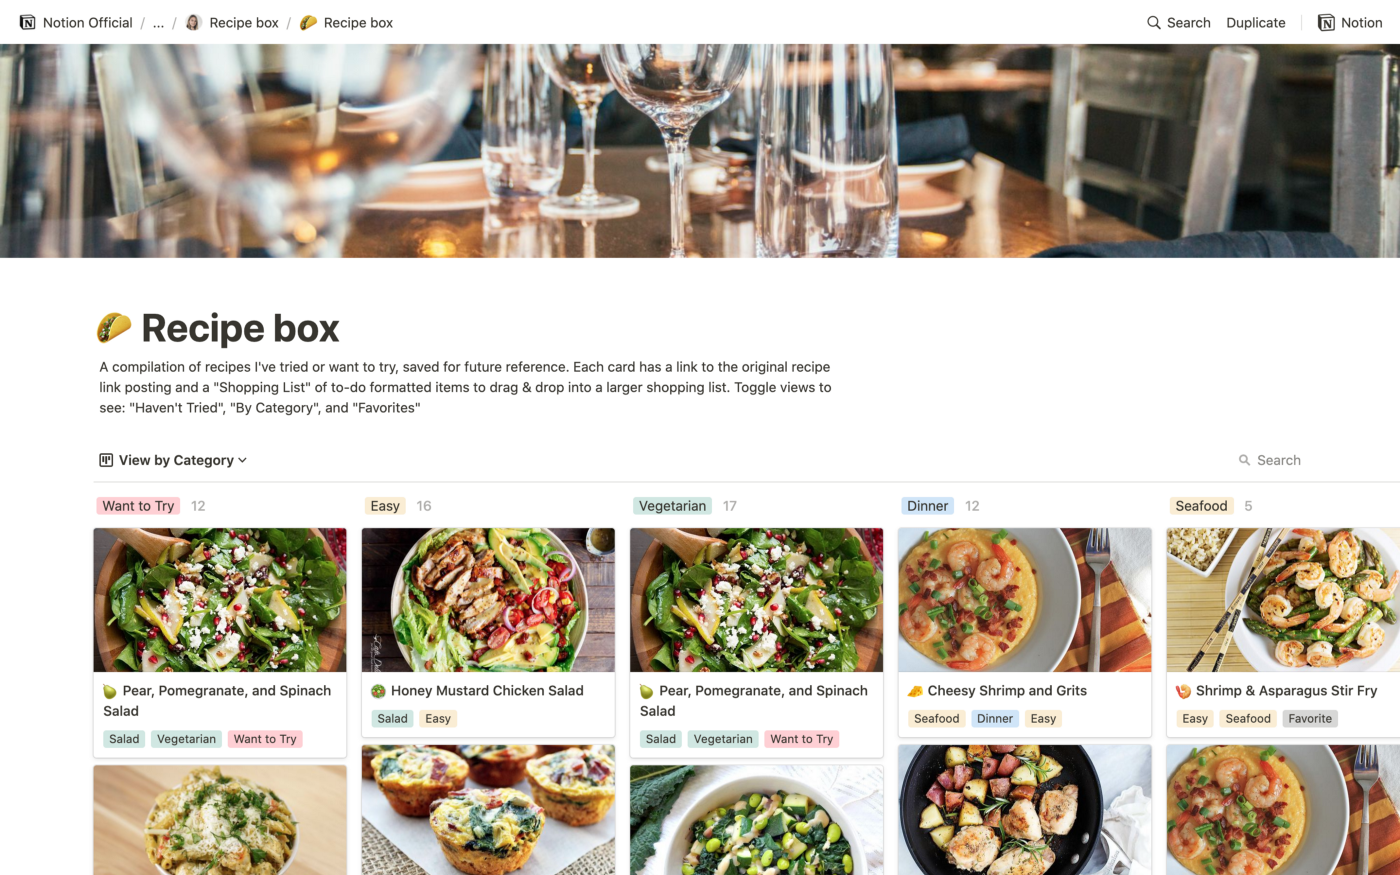 Recipe box page showing a cover image of a dinning table, and a 5 columns board with recipes in thumbnails.